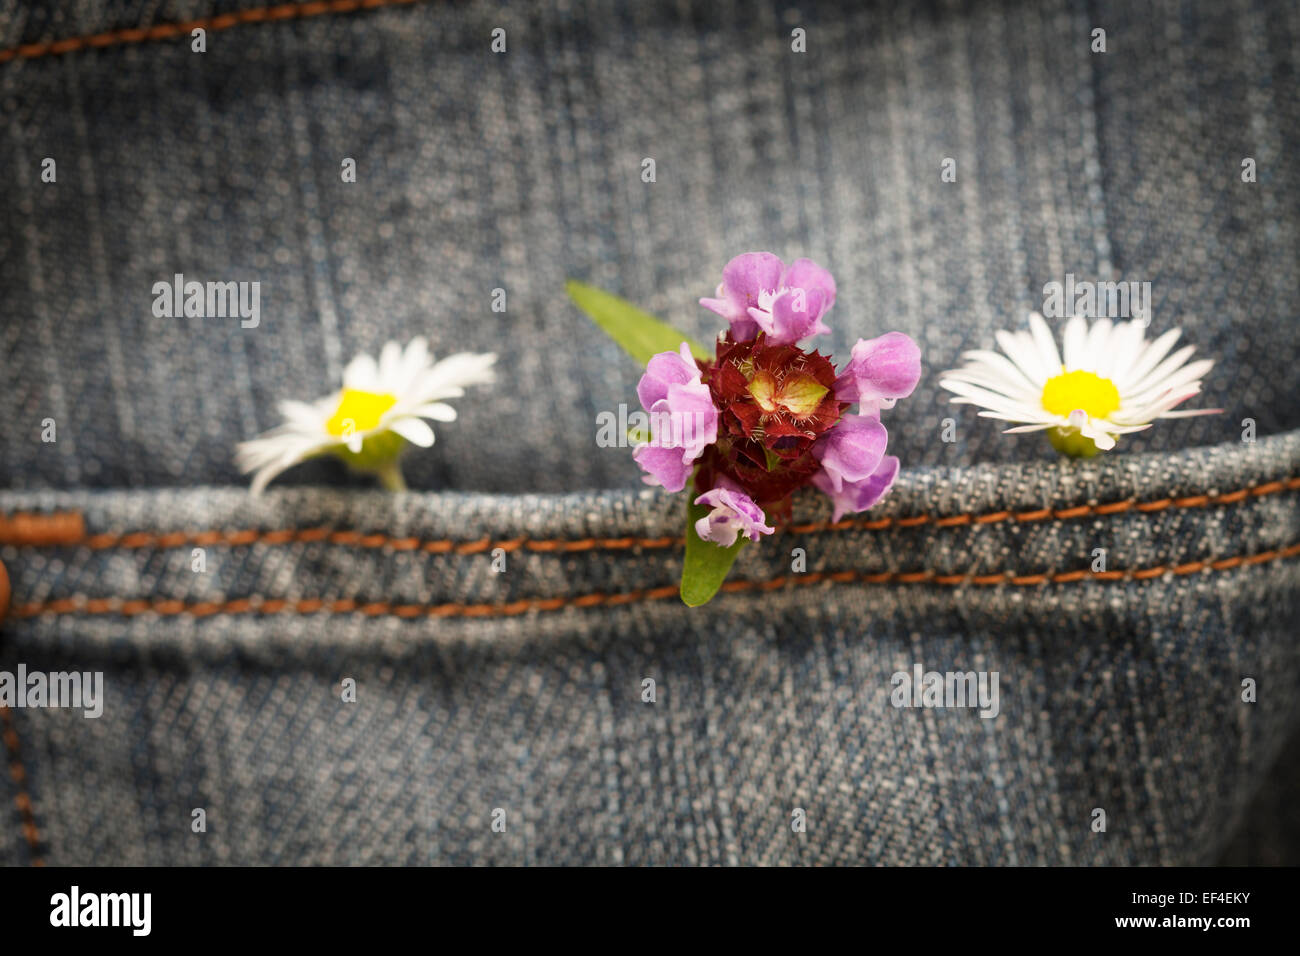 concept, flowers in a pocket of jean trousers - Stock Image